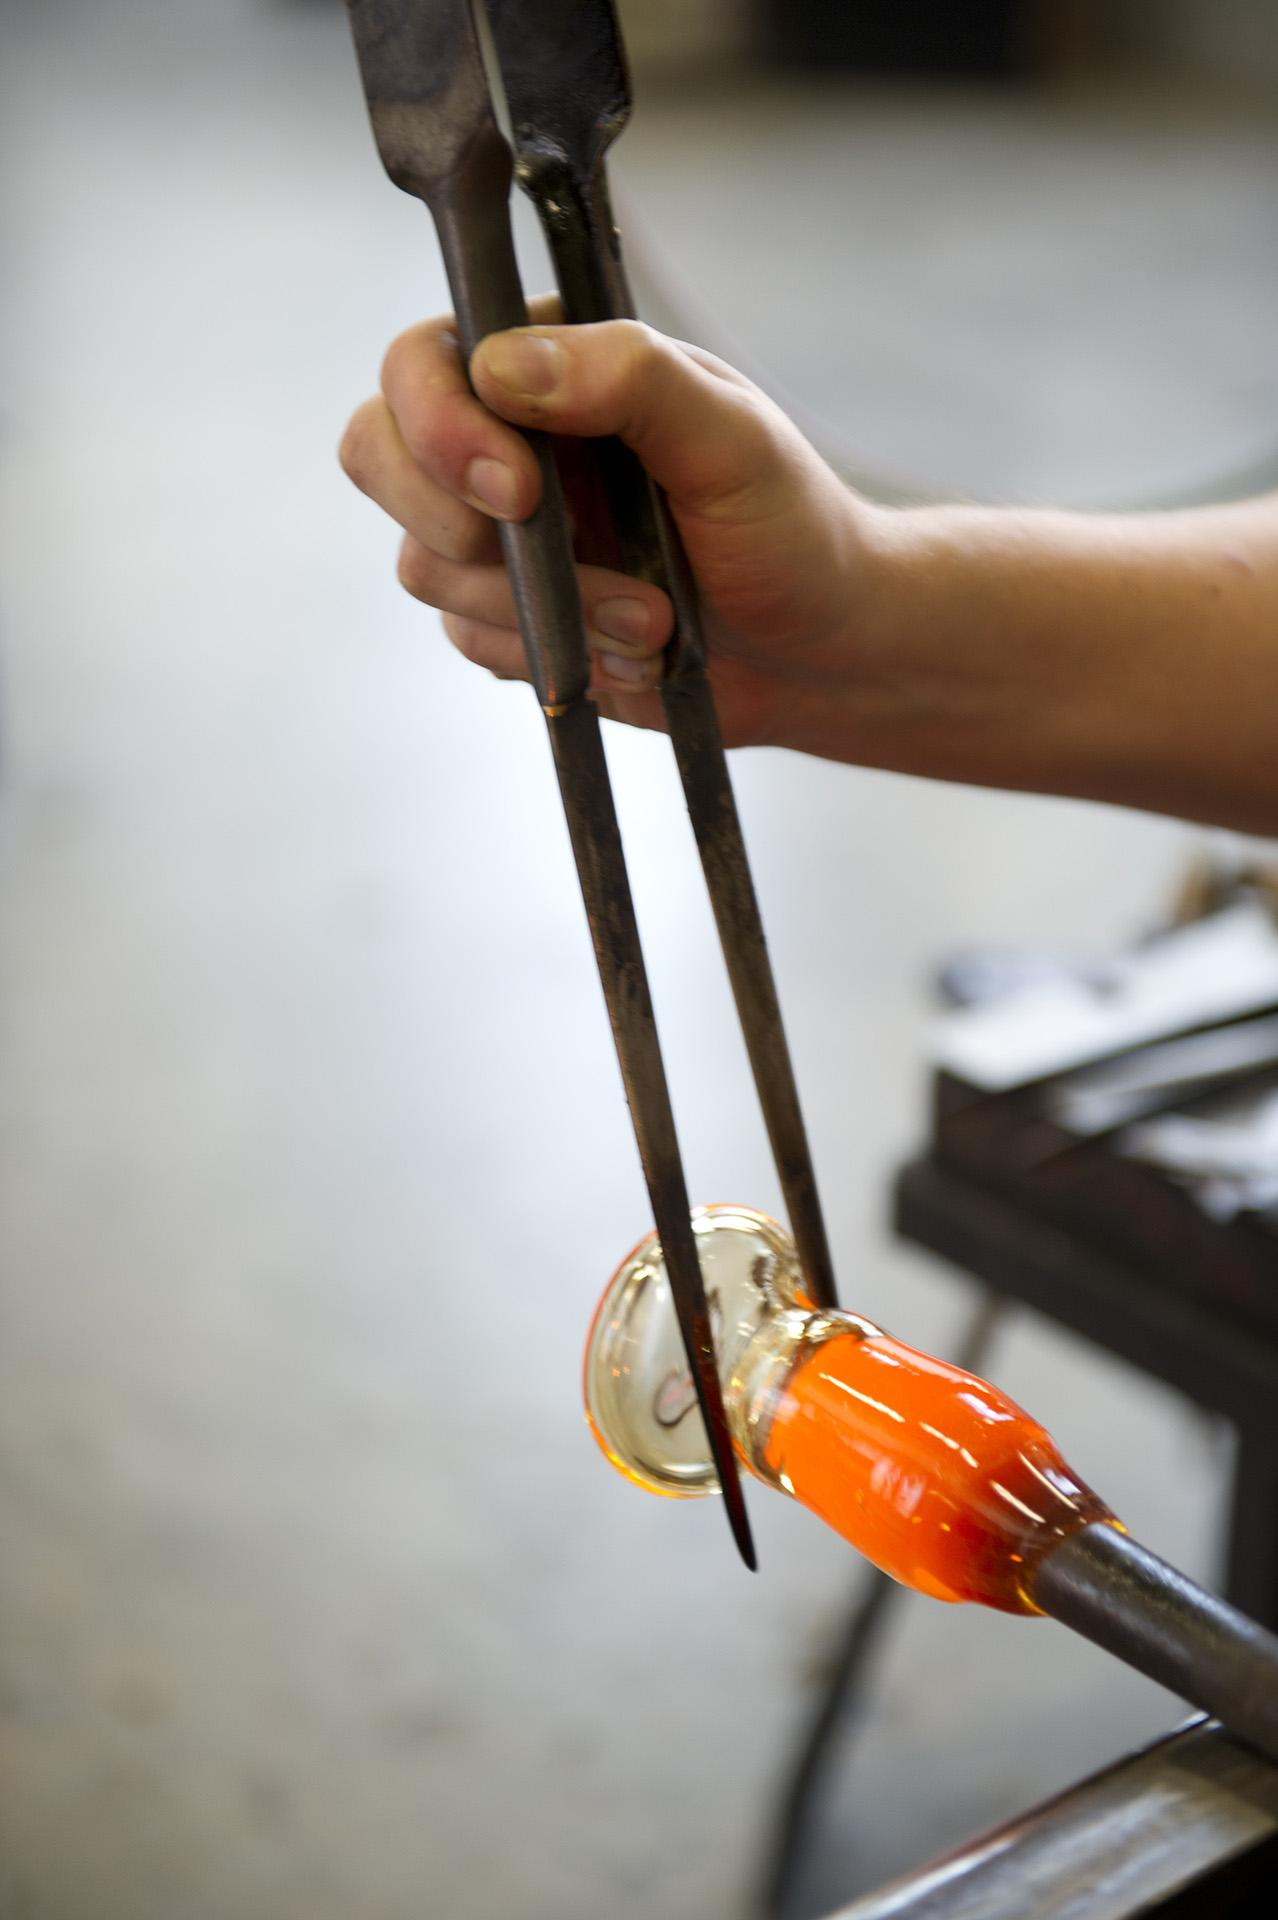 Artist shaping hot class using metal tools